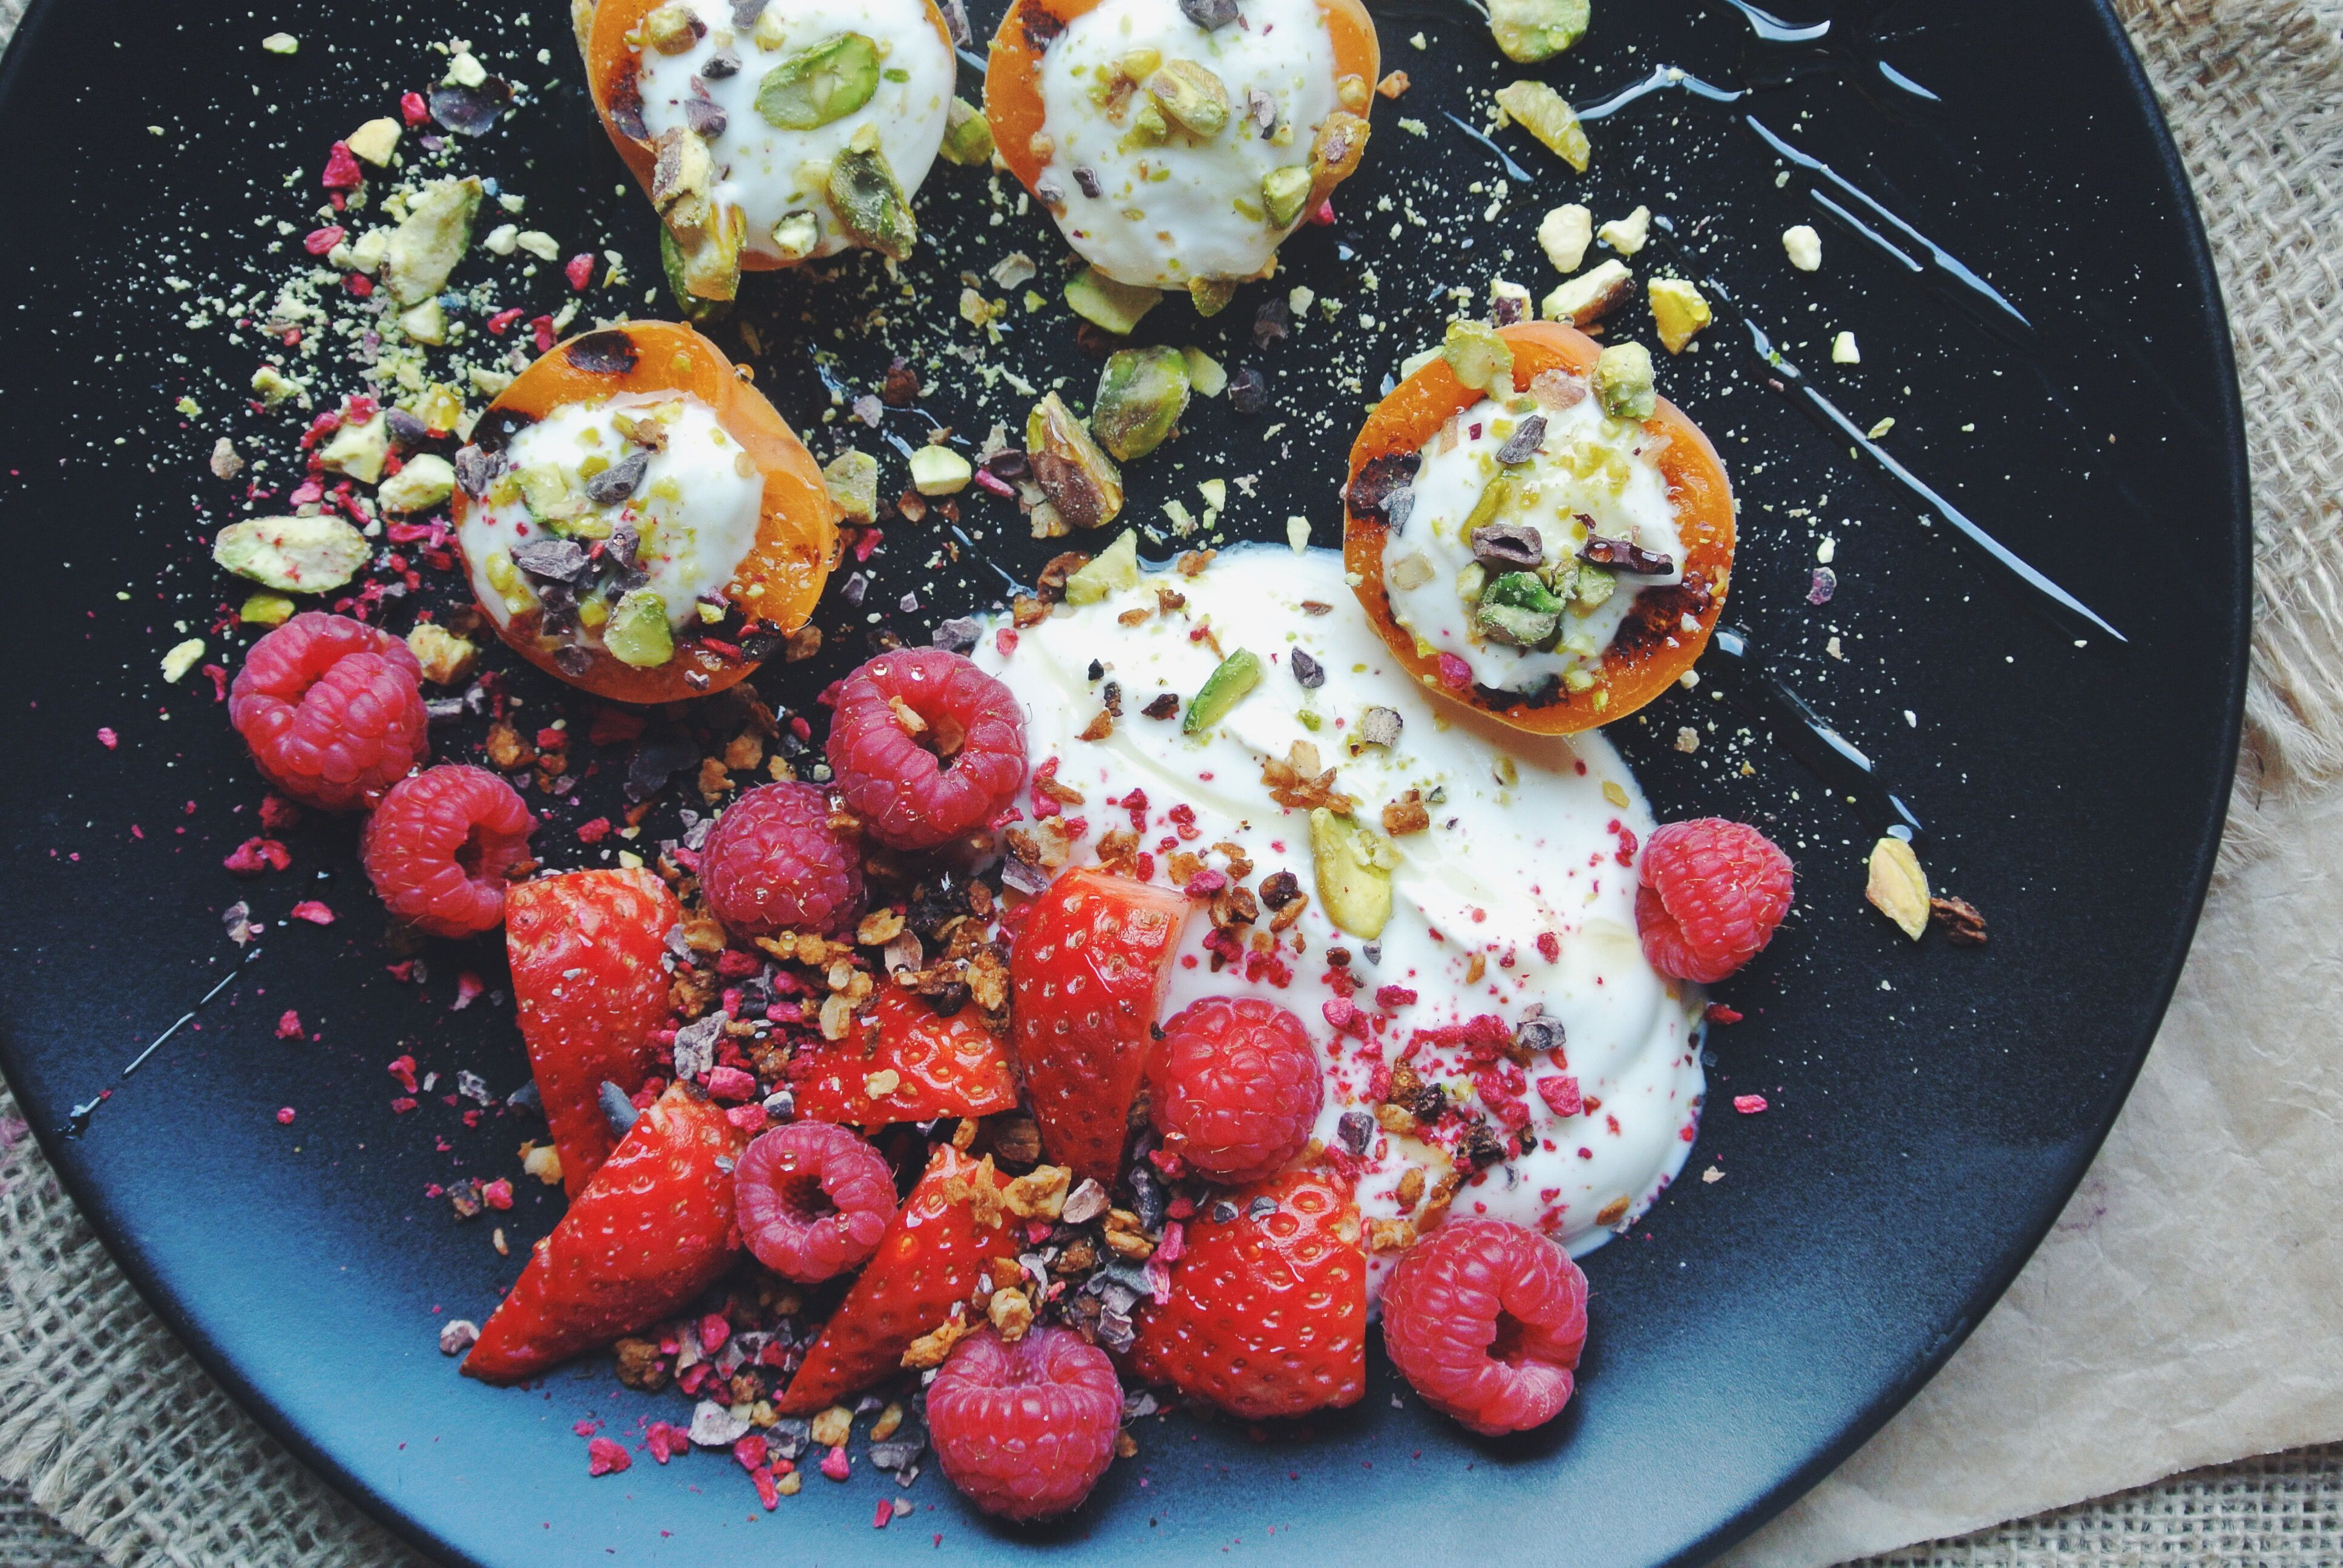 Grilled Apricots, Yoghurt, Berries, Pistachio and Honey